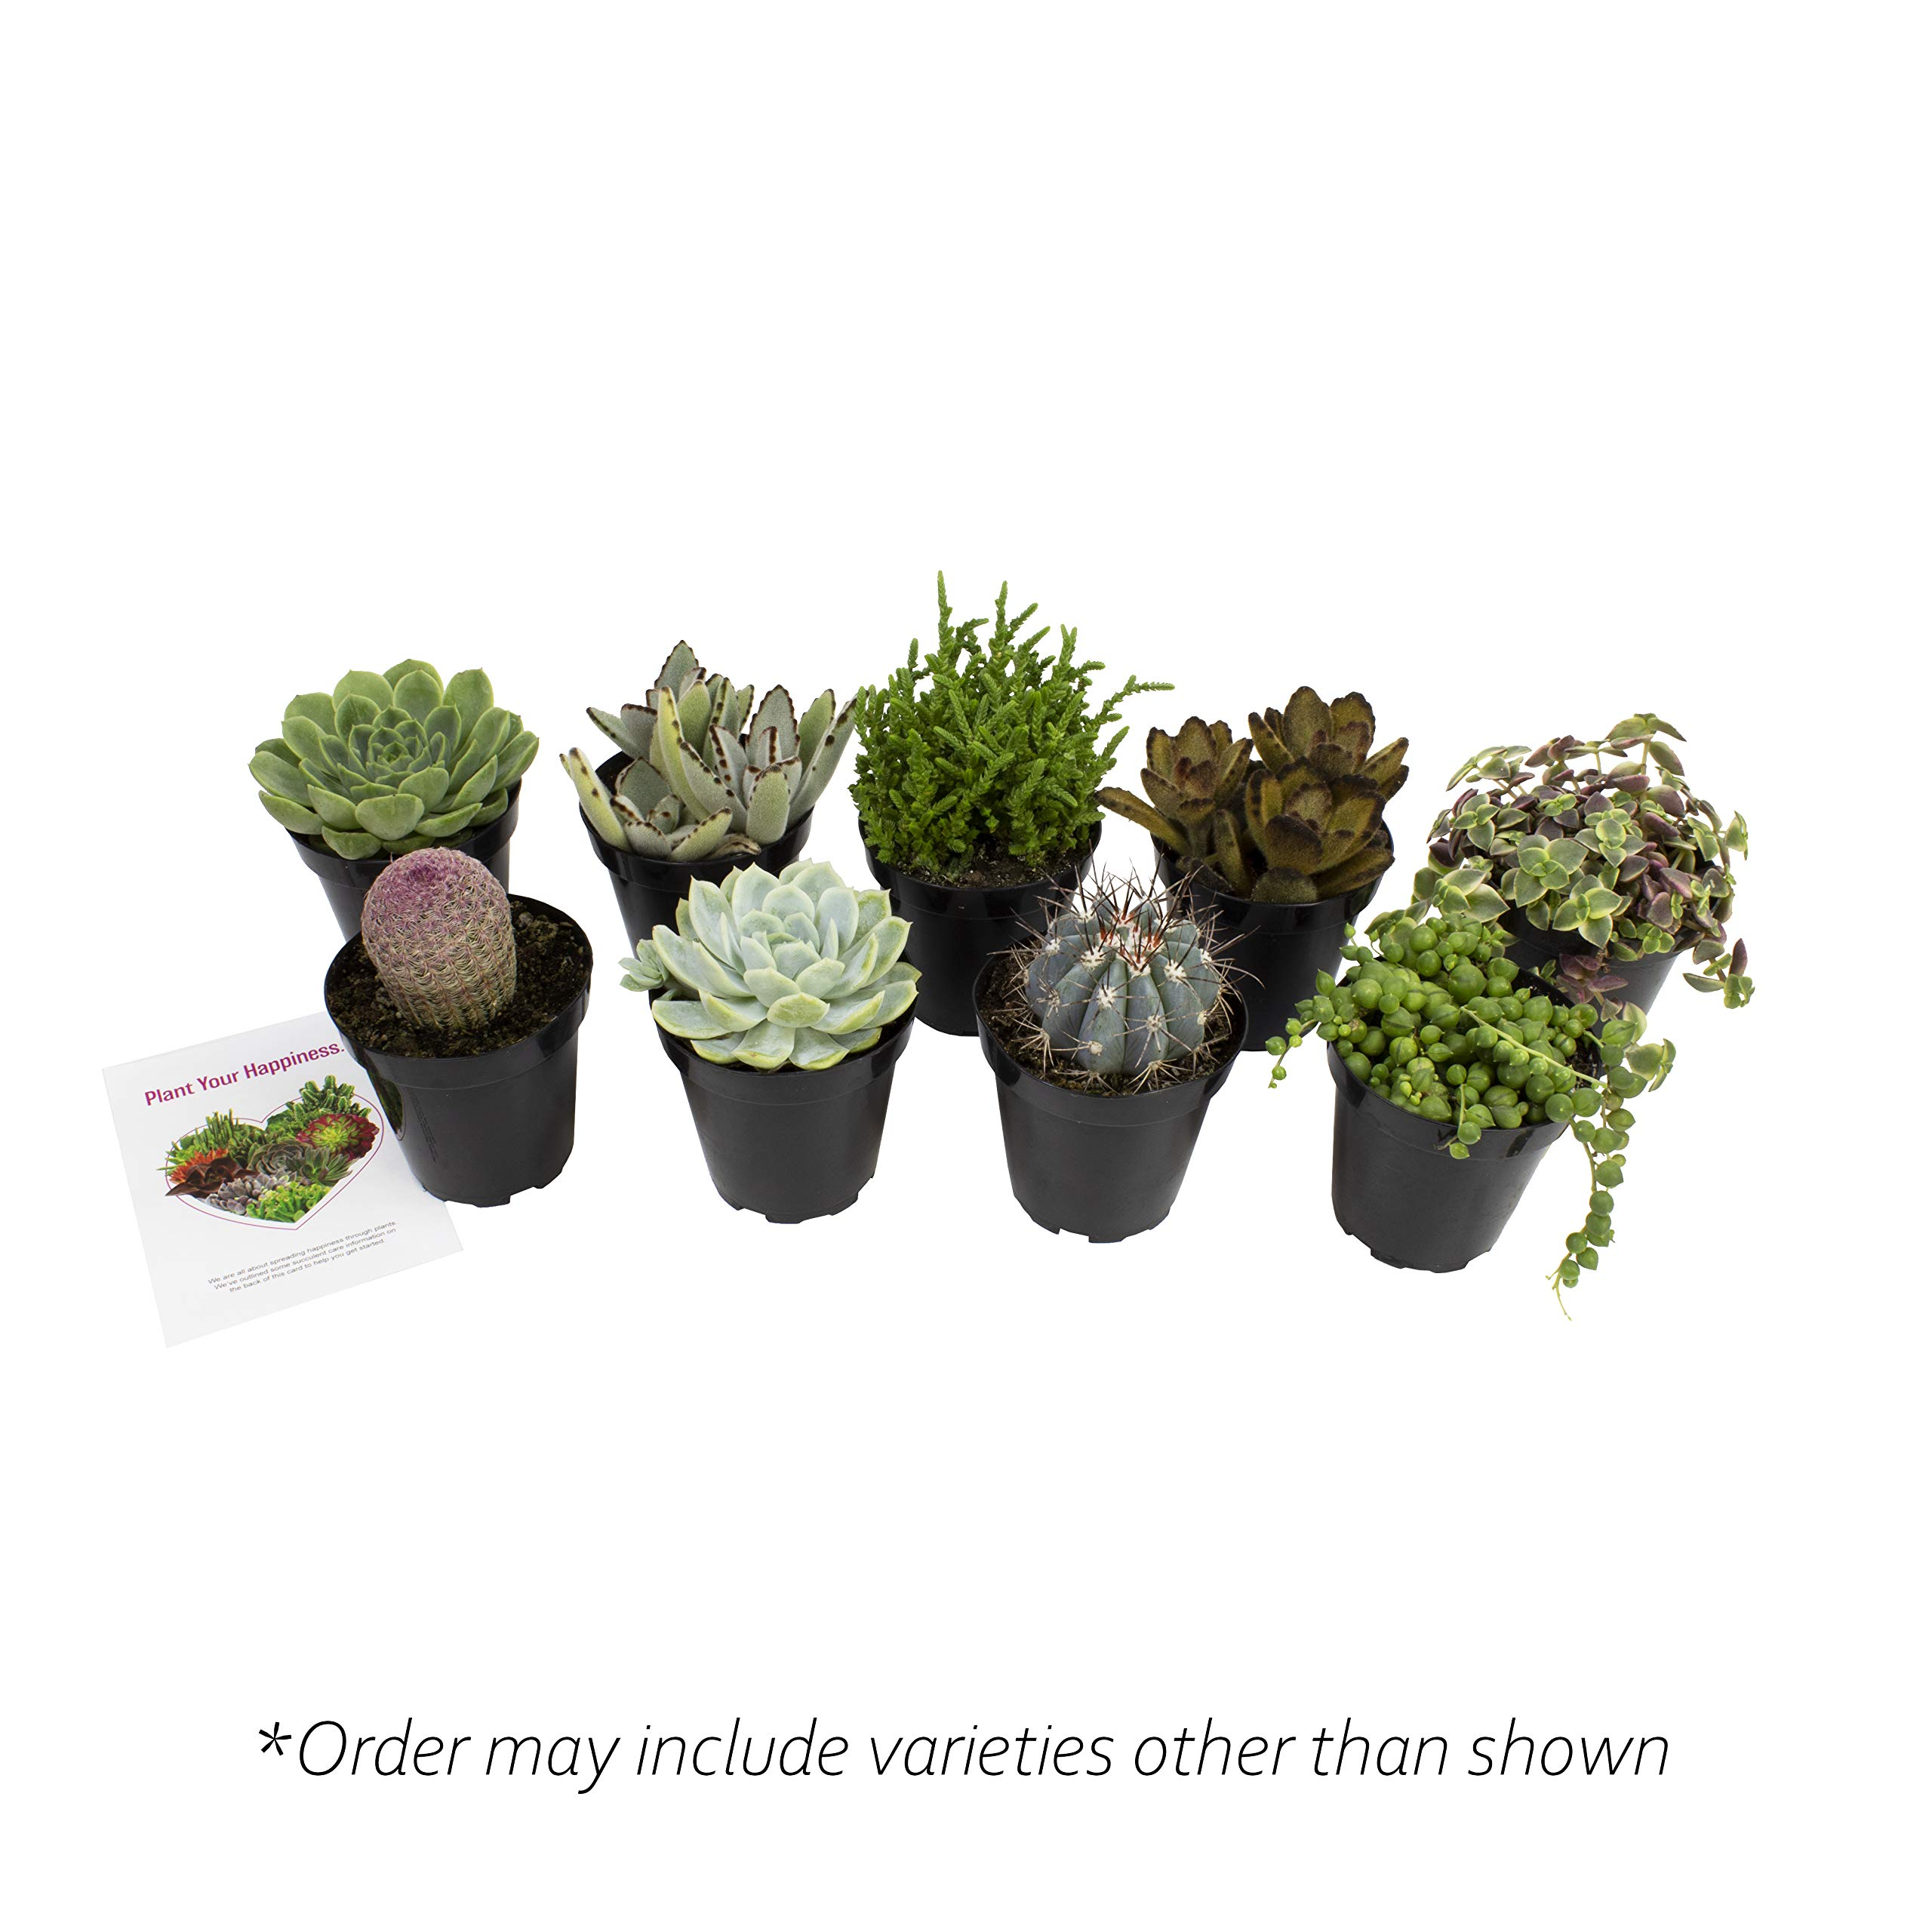 Altman Plants Assorted Live Succulents Fairy Garden Collection Colorful large plants for DIY terrariums and planters, 3.5'', 9 Pack by Altman Plants (Image #1)